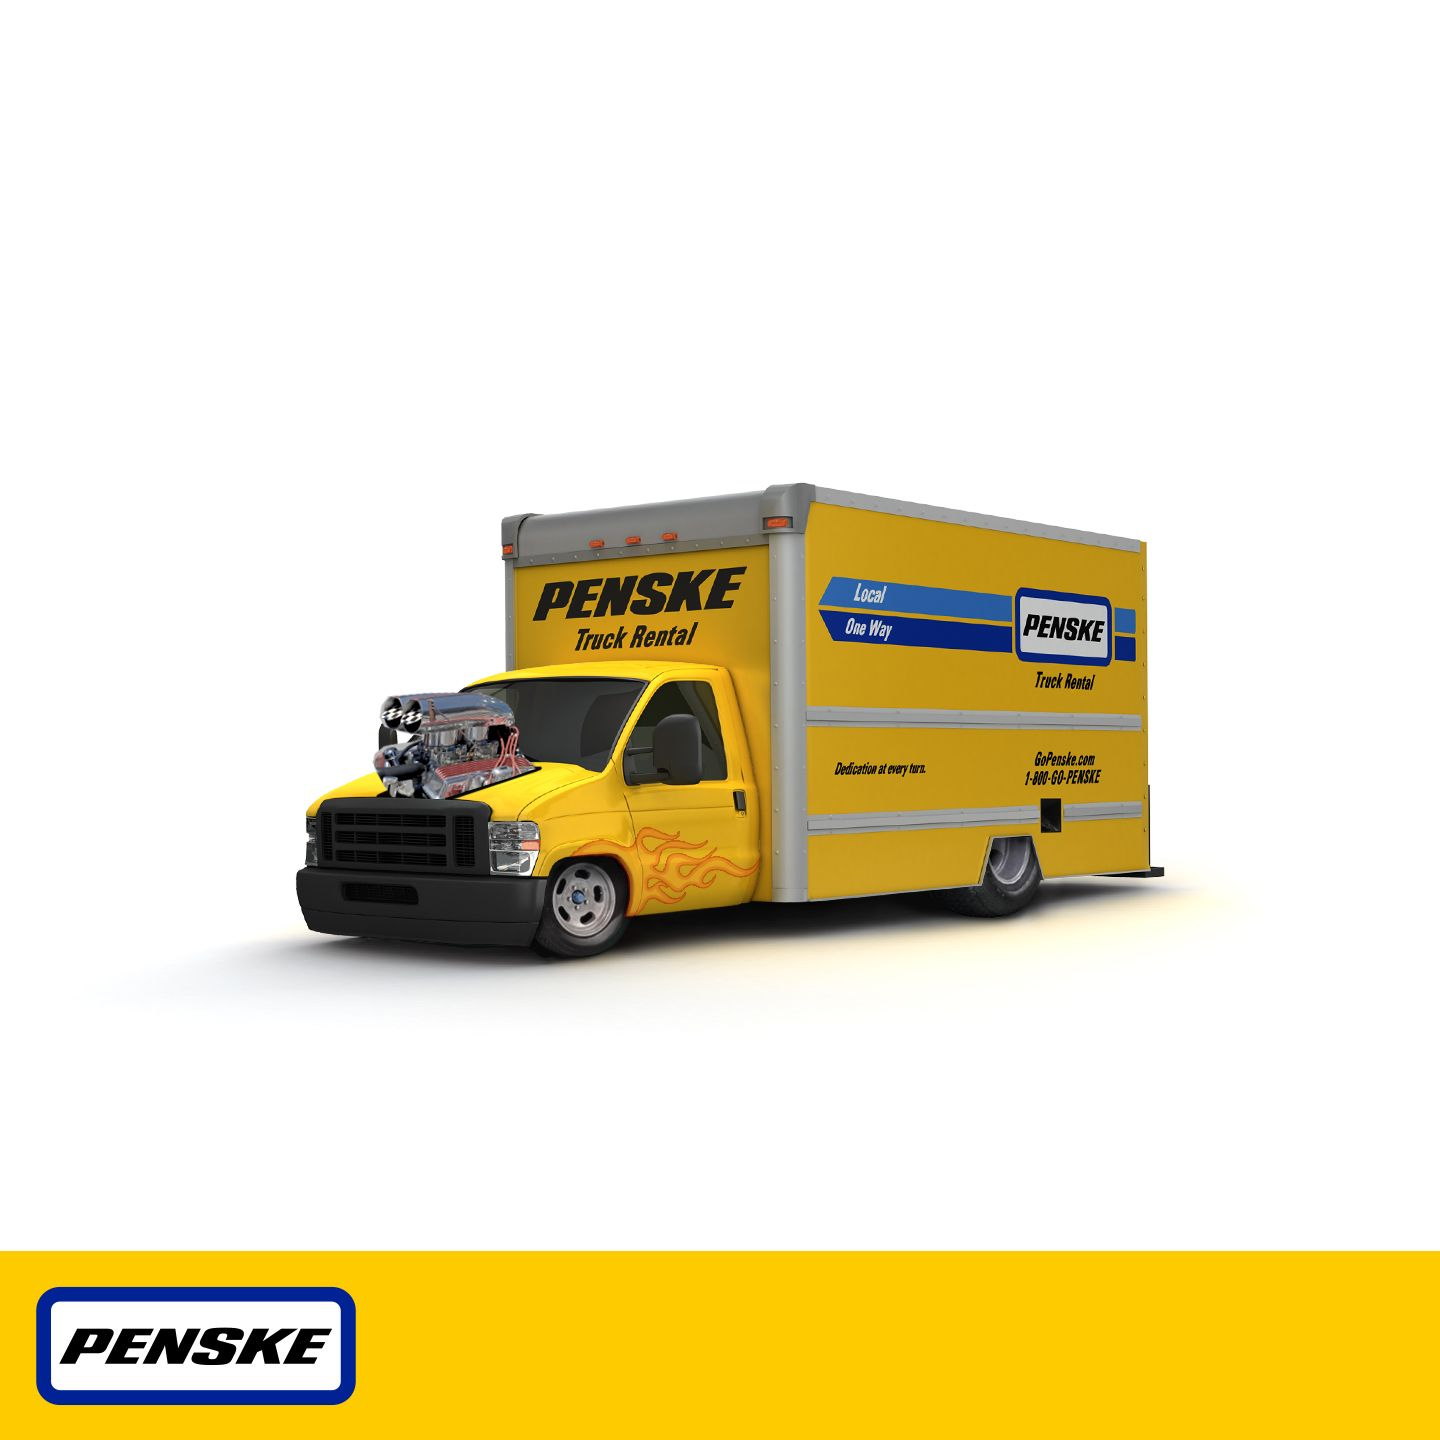 Halloween Costume Or The Child Of A Penske Rental Truck And A